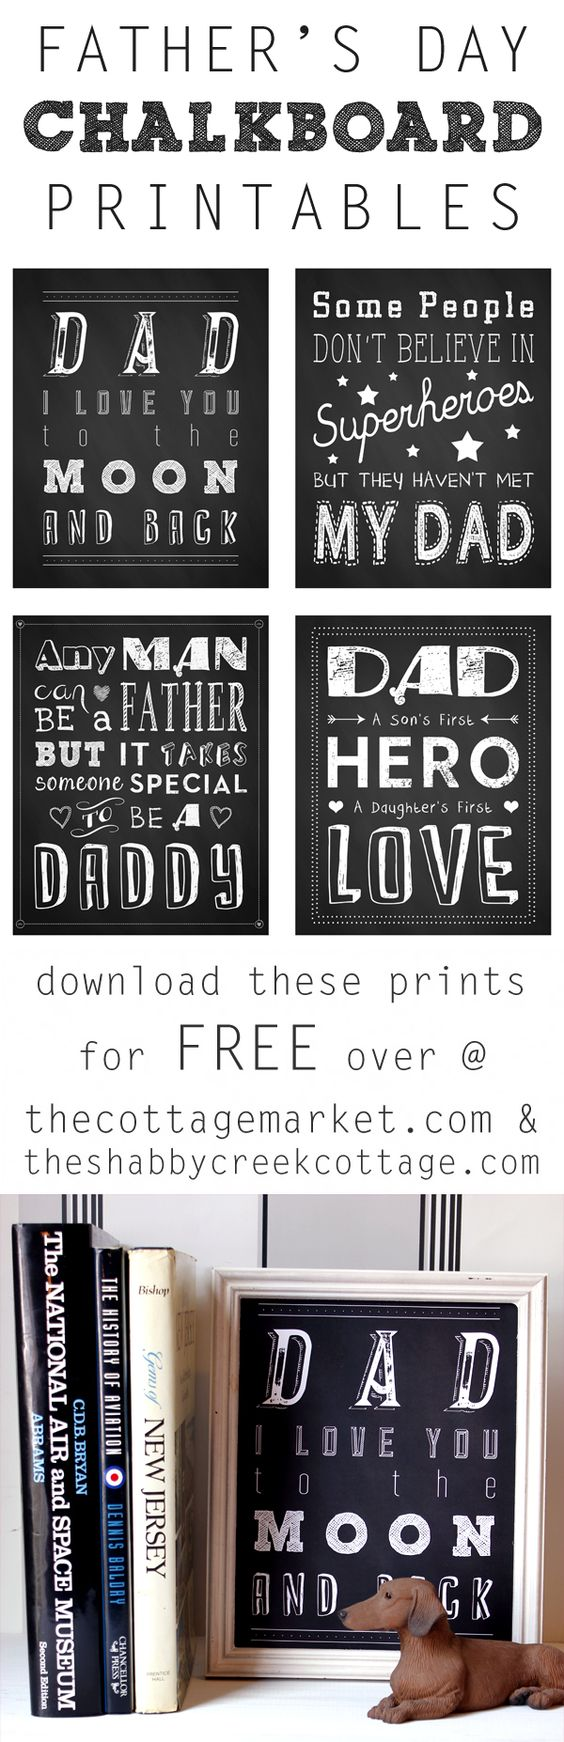 Fathers-day-gifts-from-kids-free-chalkboard-printables